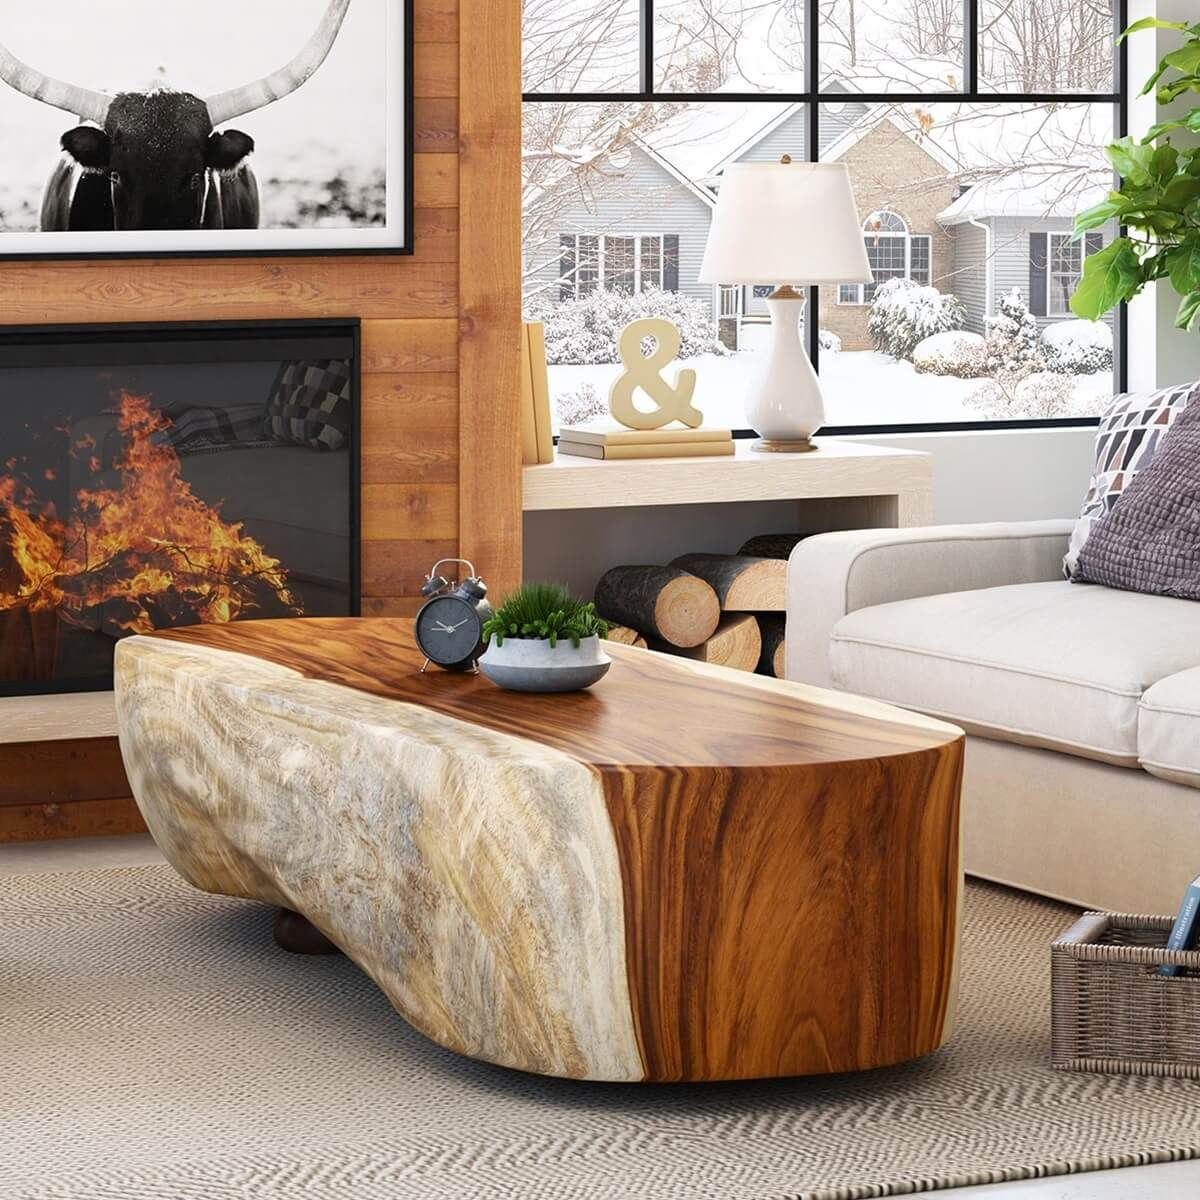 Montrose Handcrafted Suar Wood Large Block Coffee Table Solid Wood Coffee Table Coffee Table Wood Coffee Table [ 1200 x 1200 Pixel ]